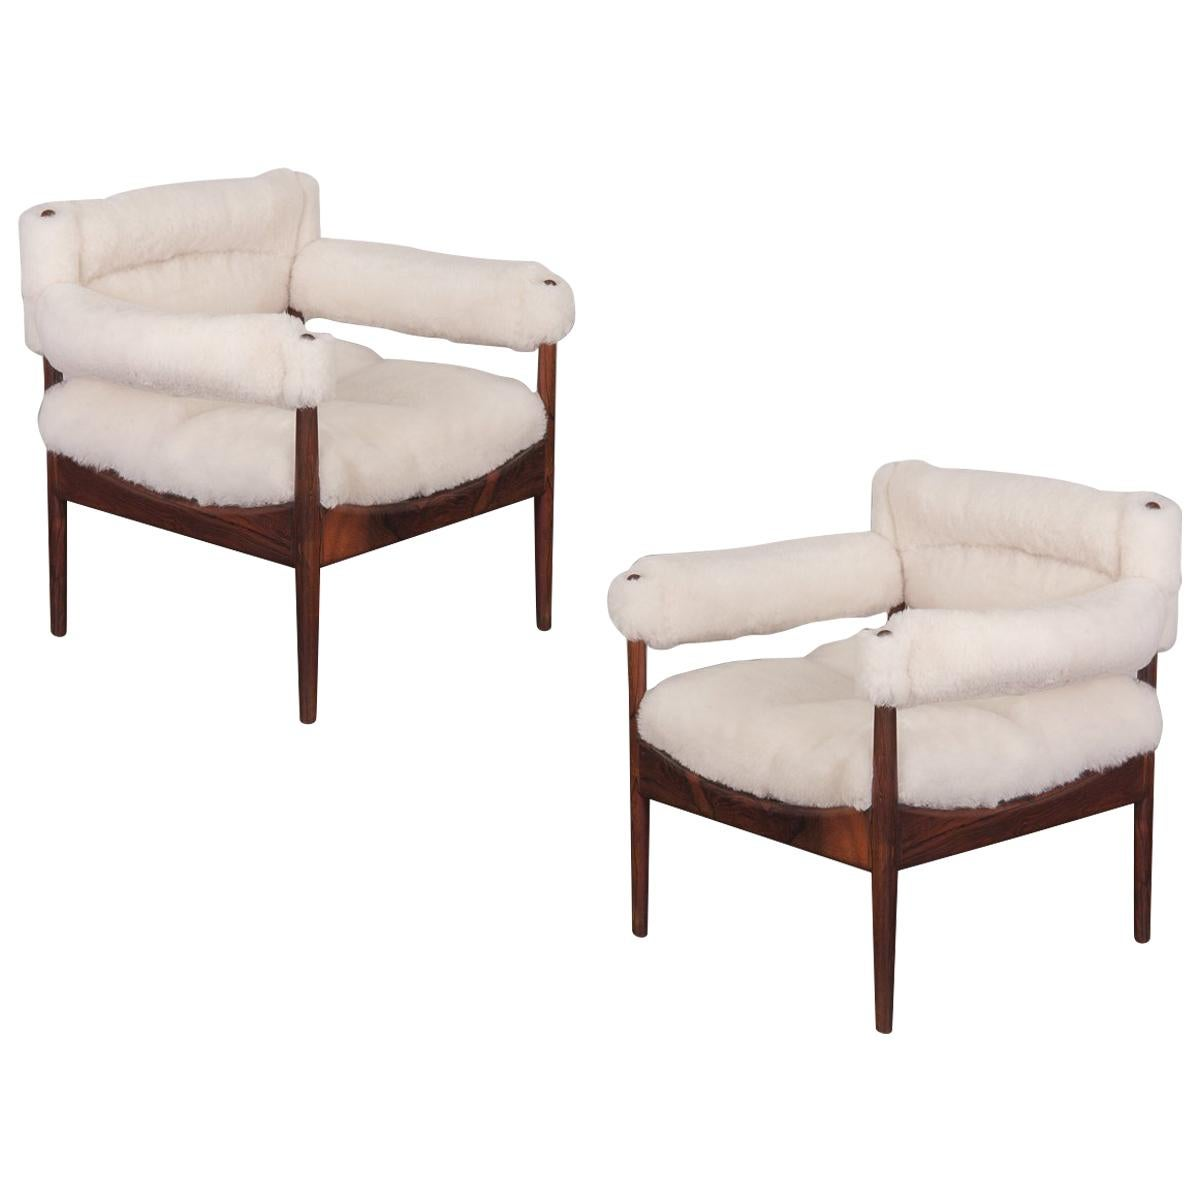 Pair of Kristian Vedel Sheepskin Modus Low Back Lounge Chairs